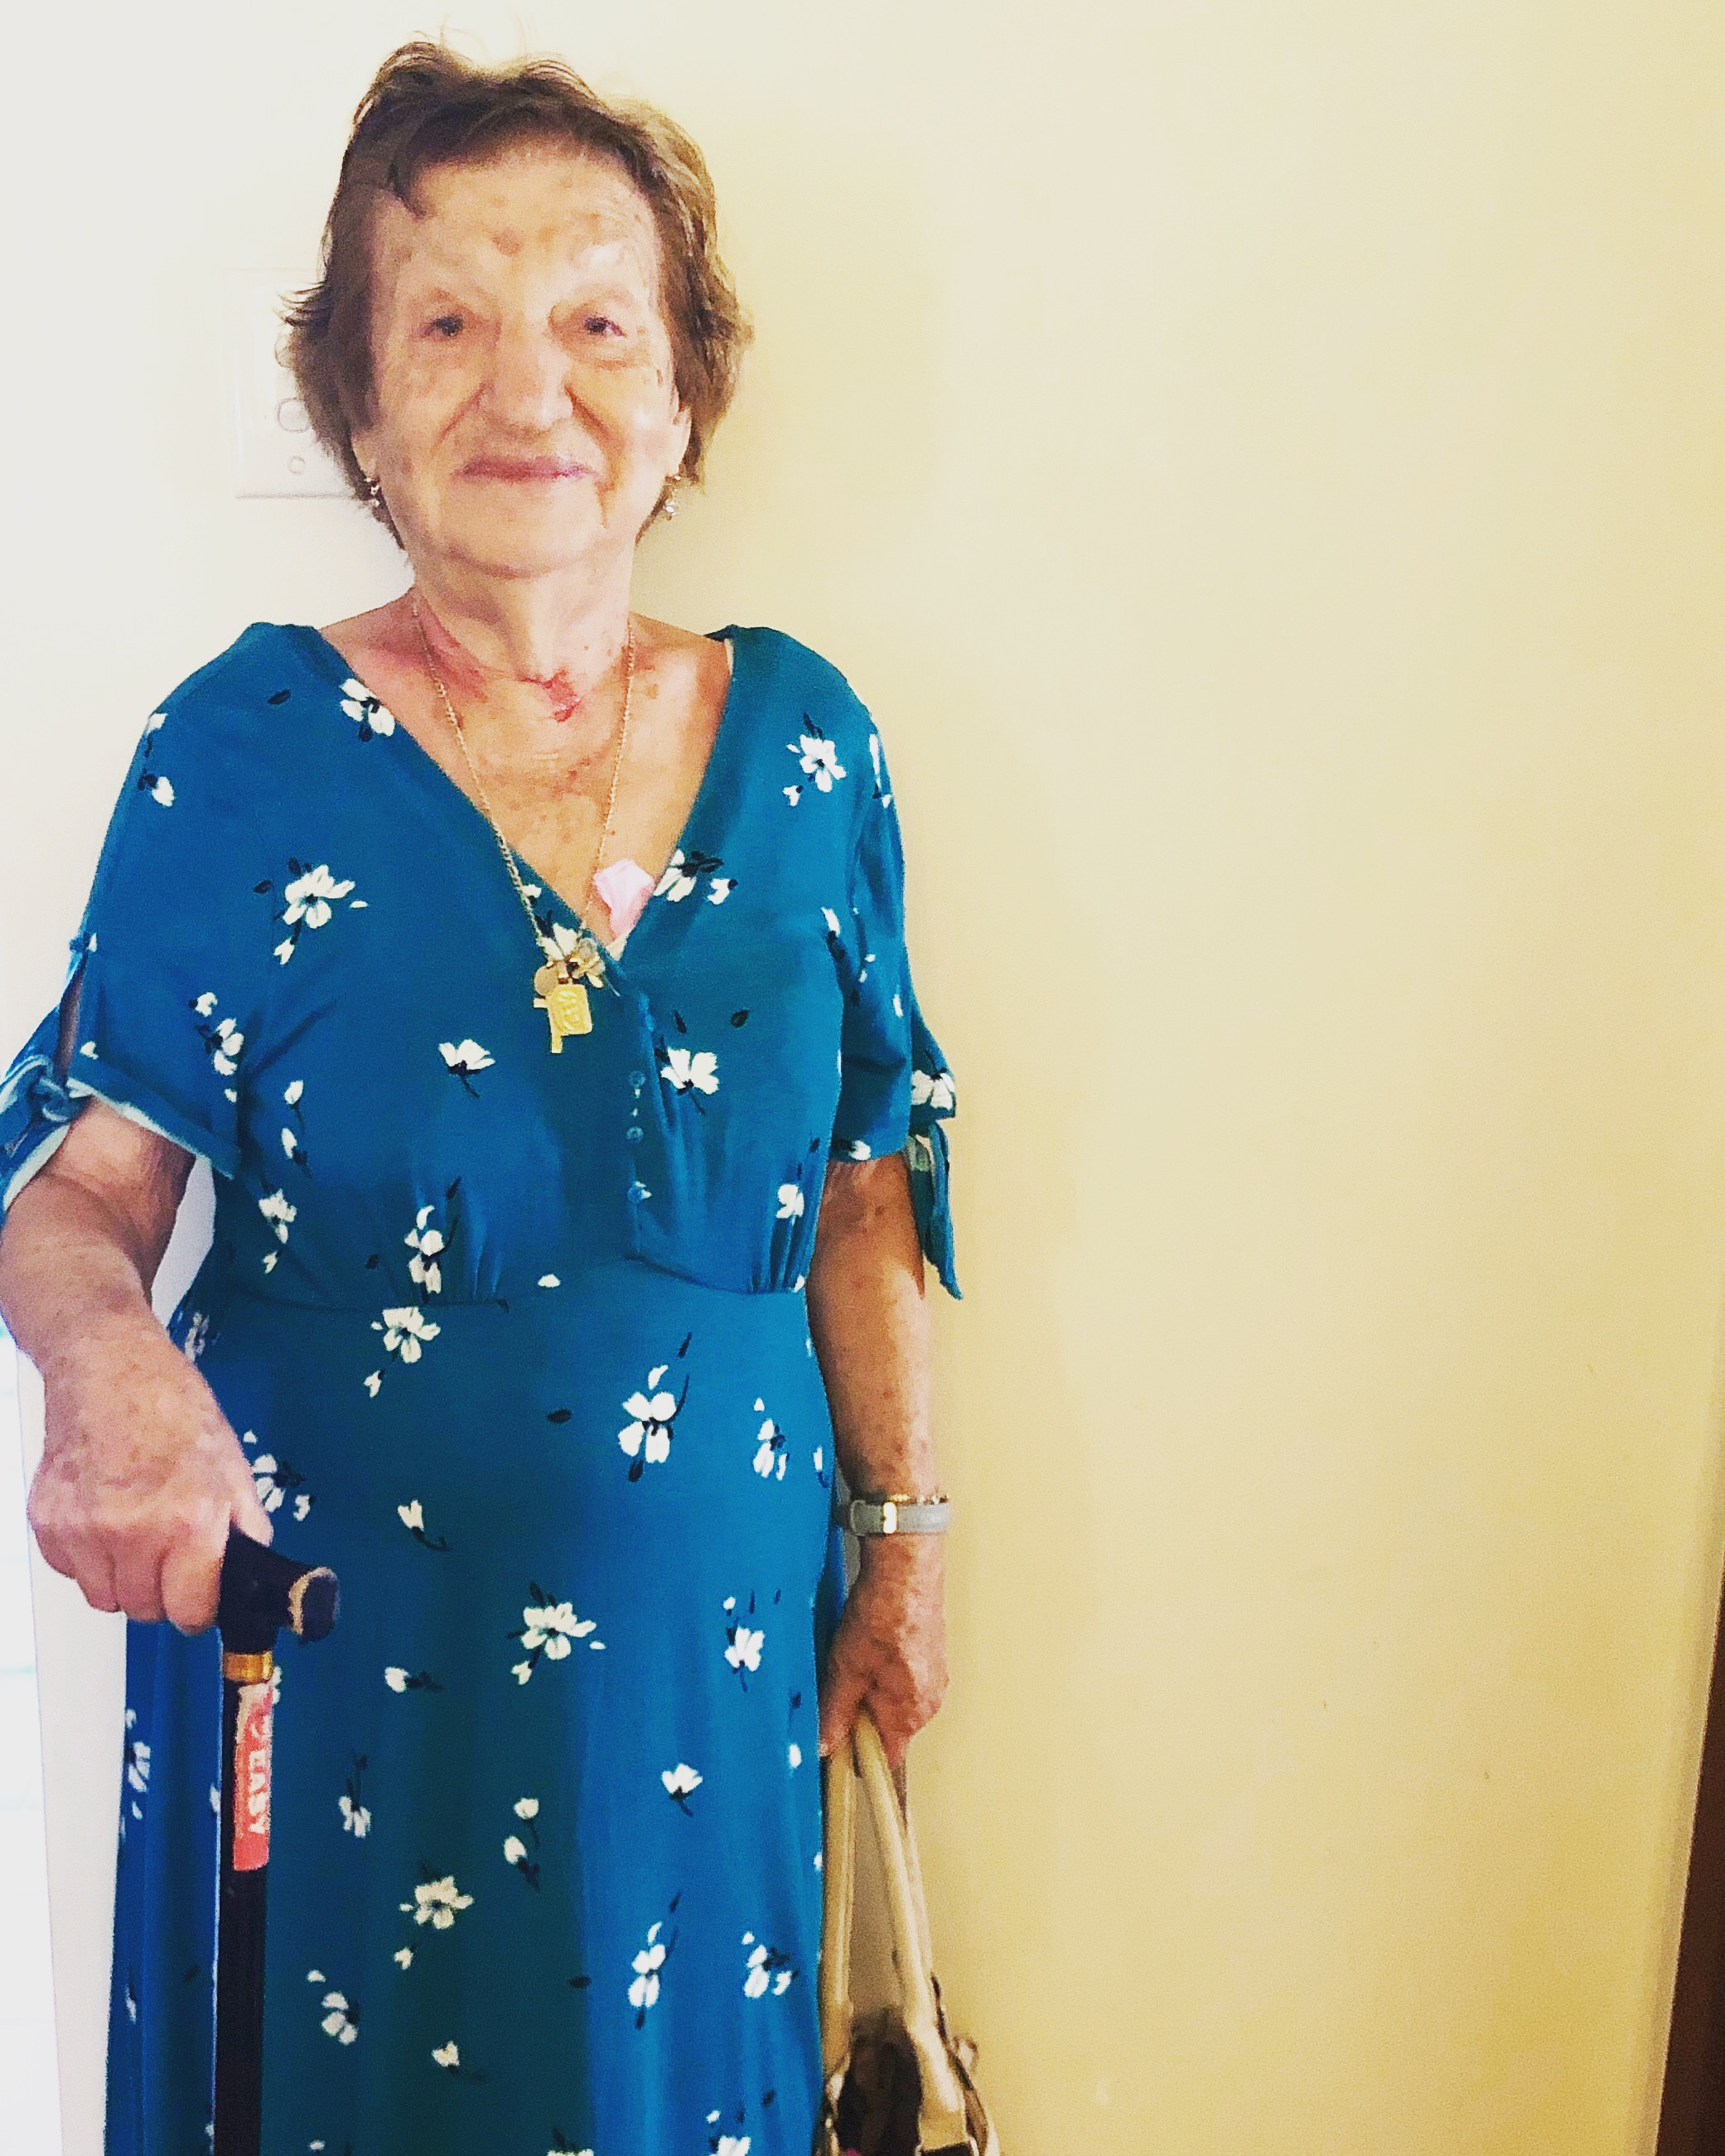 Nonna Rosaria 95 years of age